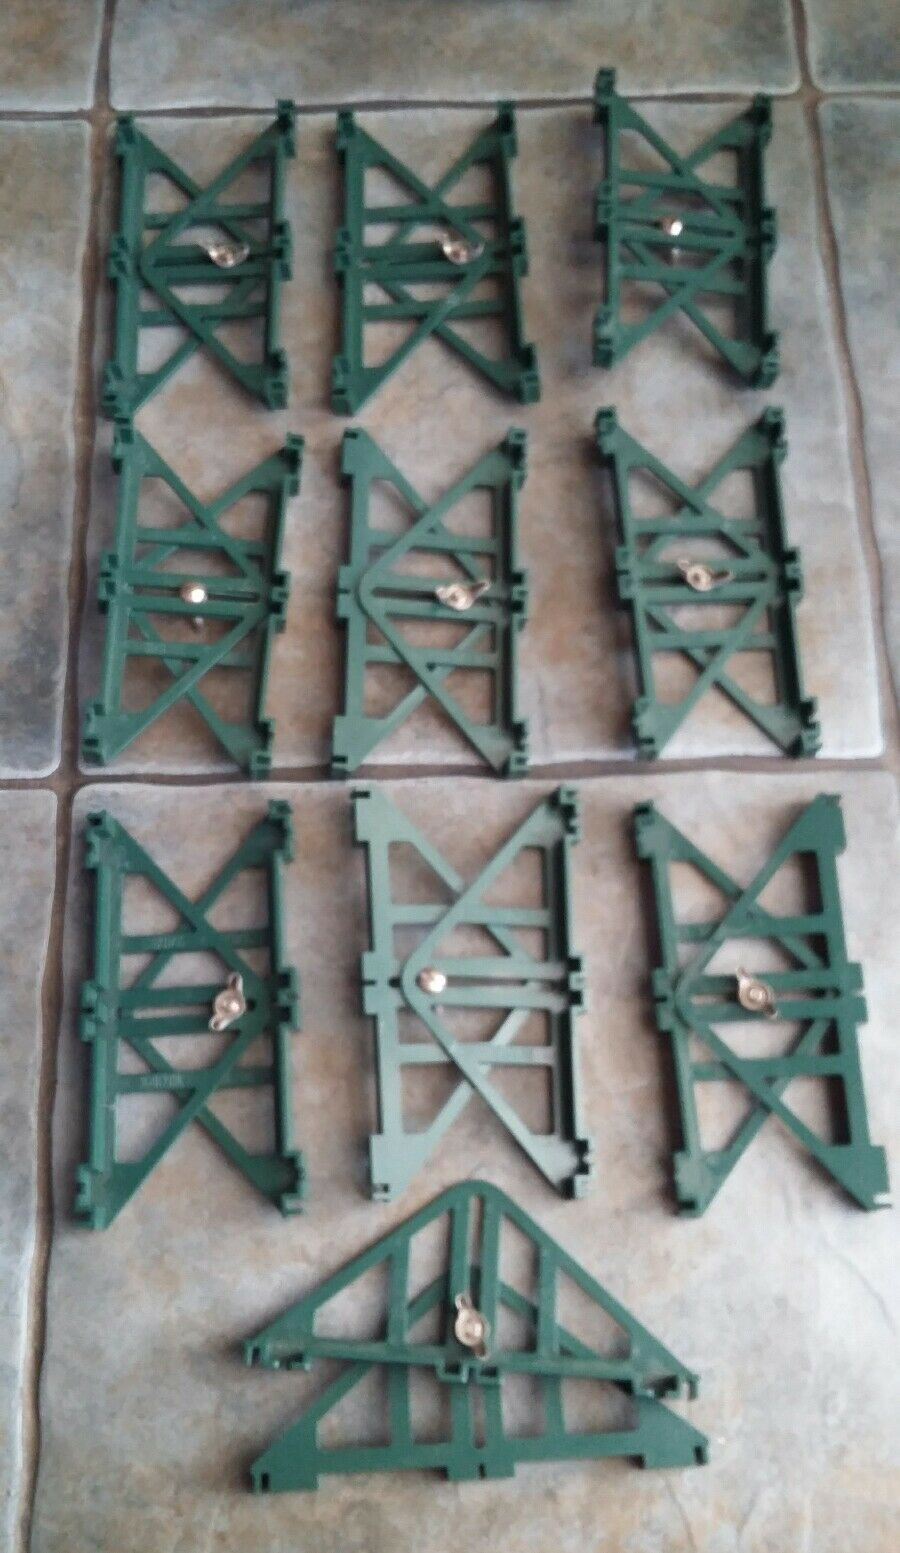 10 PAIRS OF VINTAGE SCALEXTRIC GREEN PLASTIC BRIDGE SUPPORTS 20 SINGLE IN TOTAL